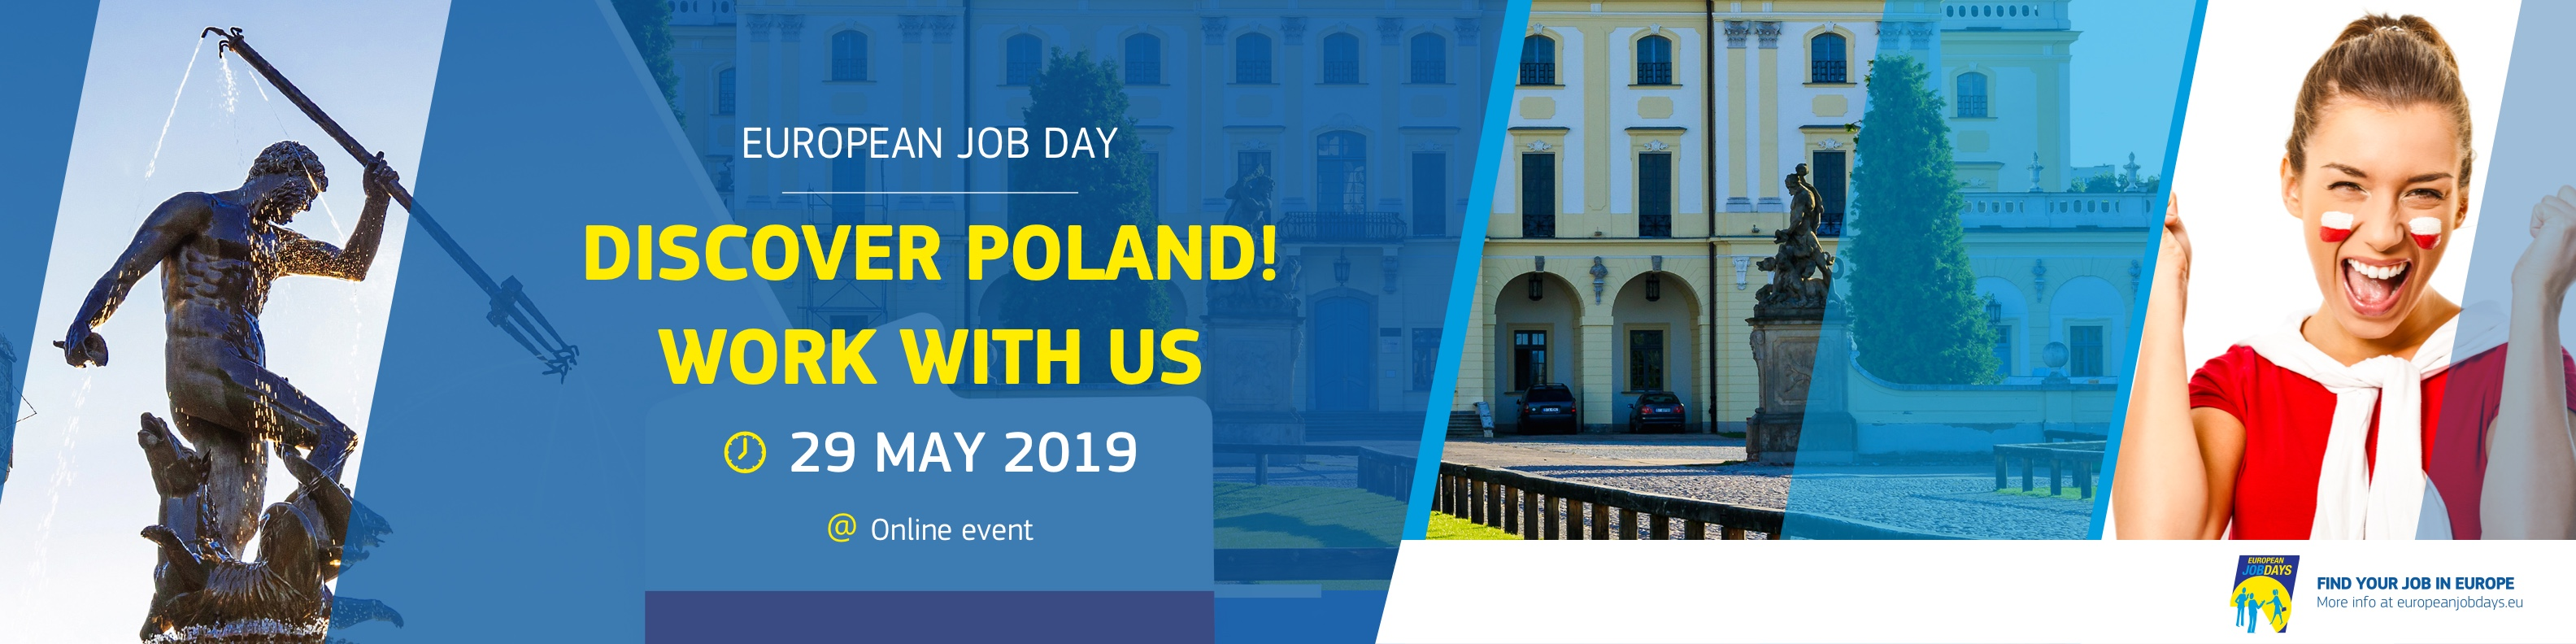 banner targów pracy: Discover Poland! Work with us